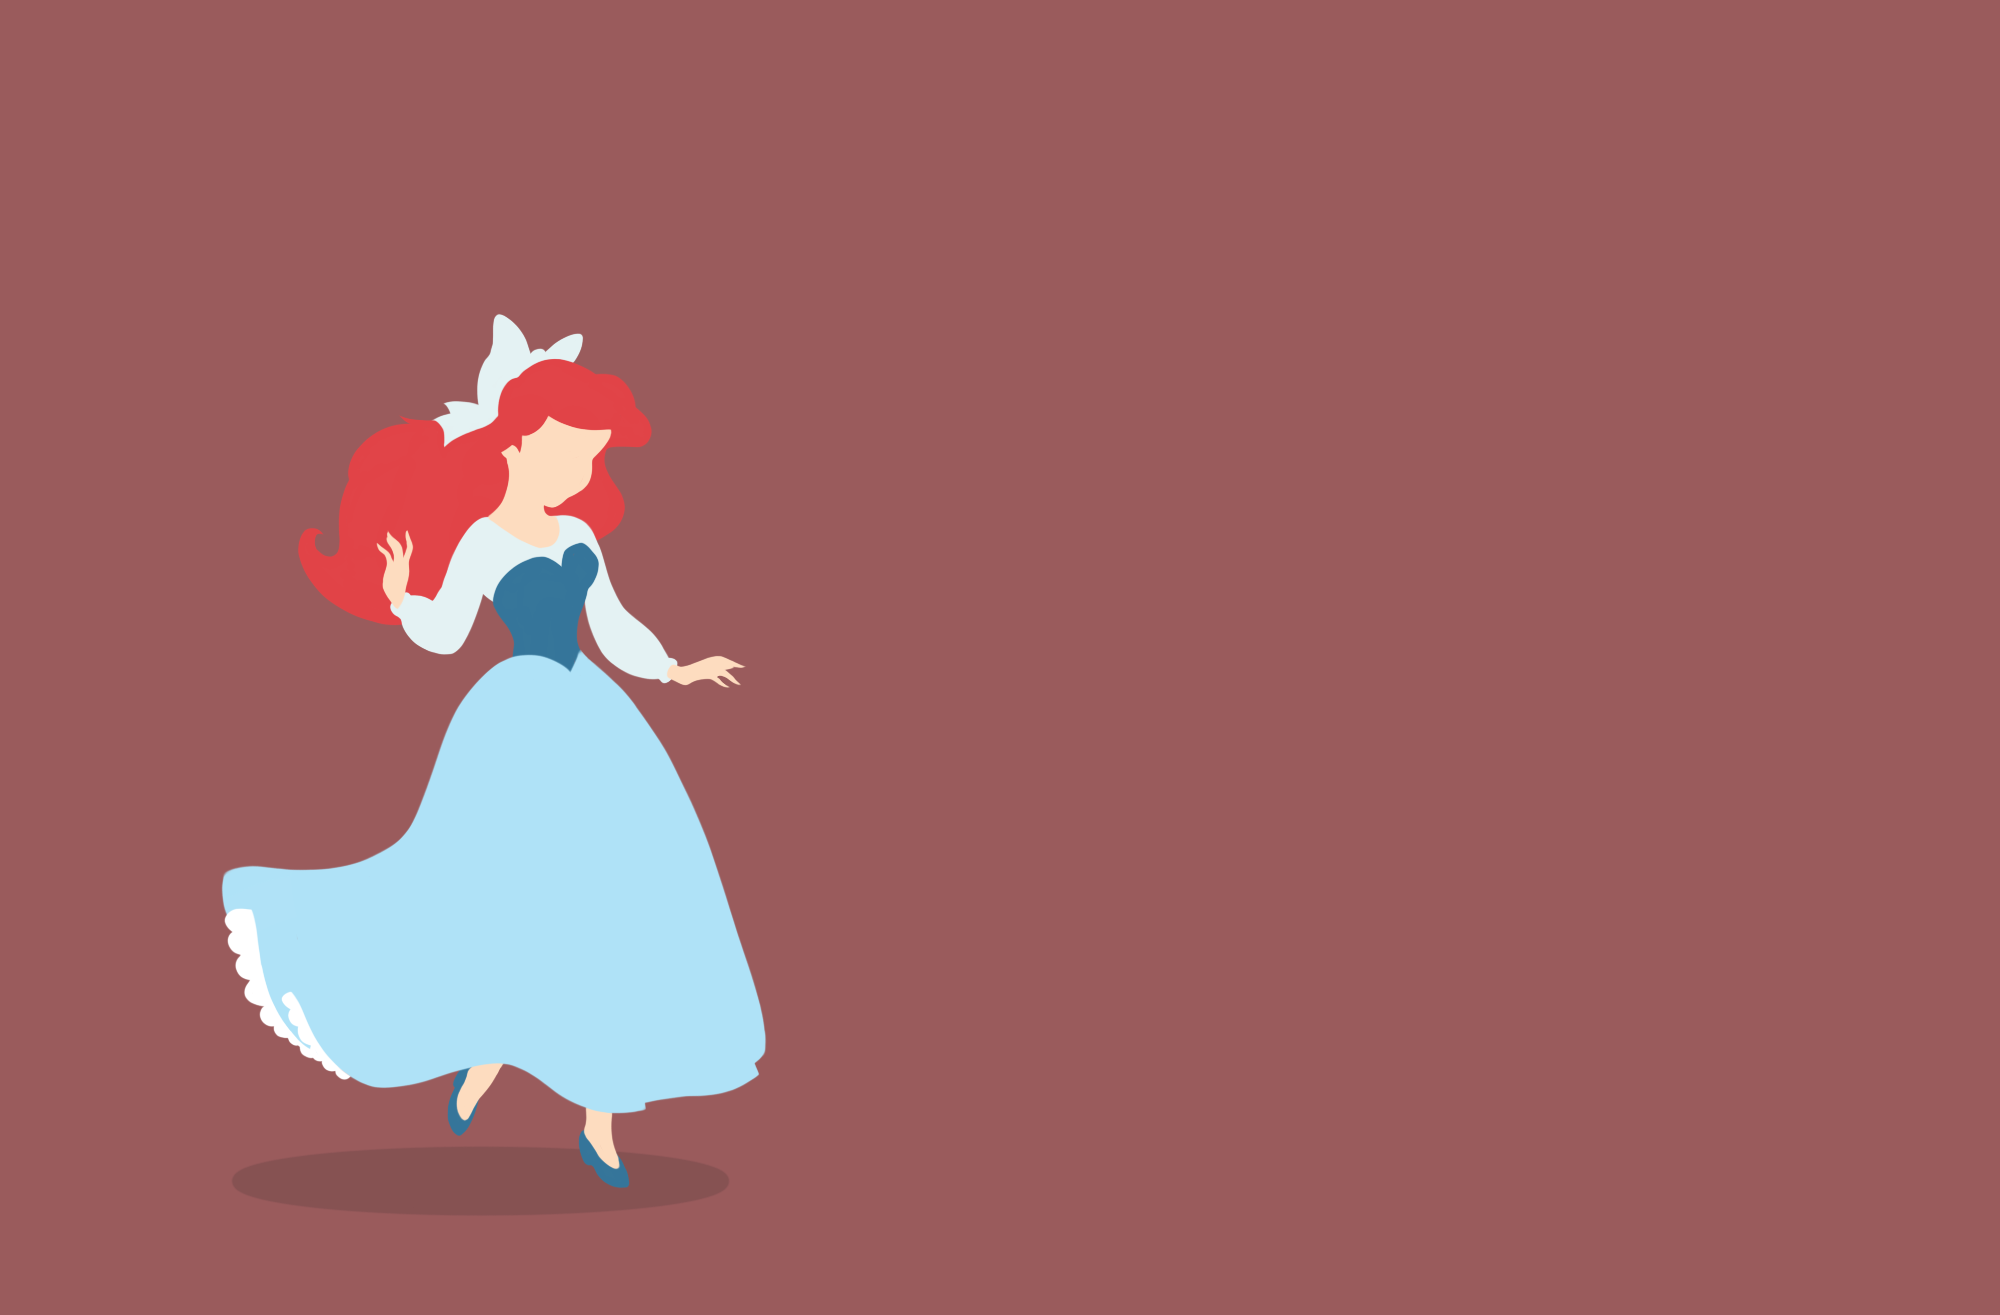 Disney Princess Ariel Wallpaper The Little Mermaid Drawn By Milena Kuhn Disney Desktop Wallpaper Little Mermaid Wallpaper Disney Princess Wallpaper